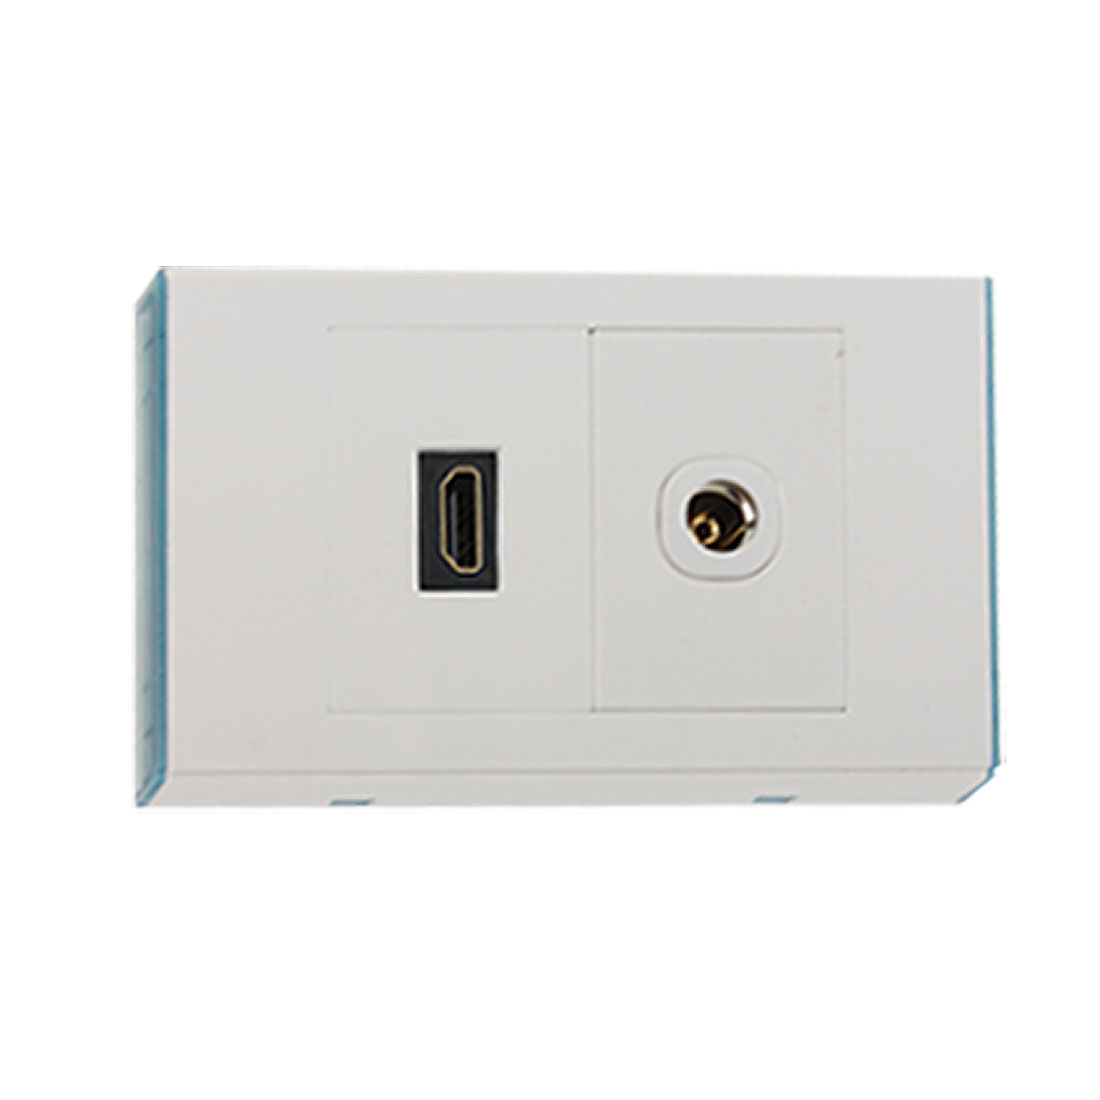 TV Coaxial Socket HDMI Outlet Wall Plate Panel Cover White